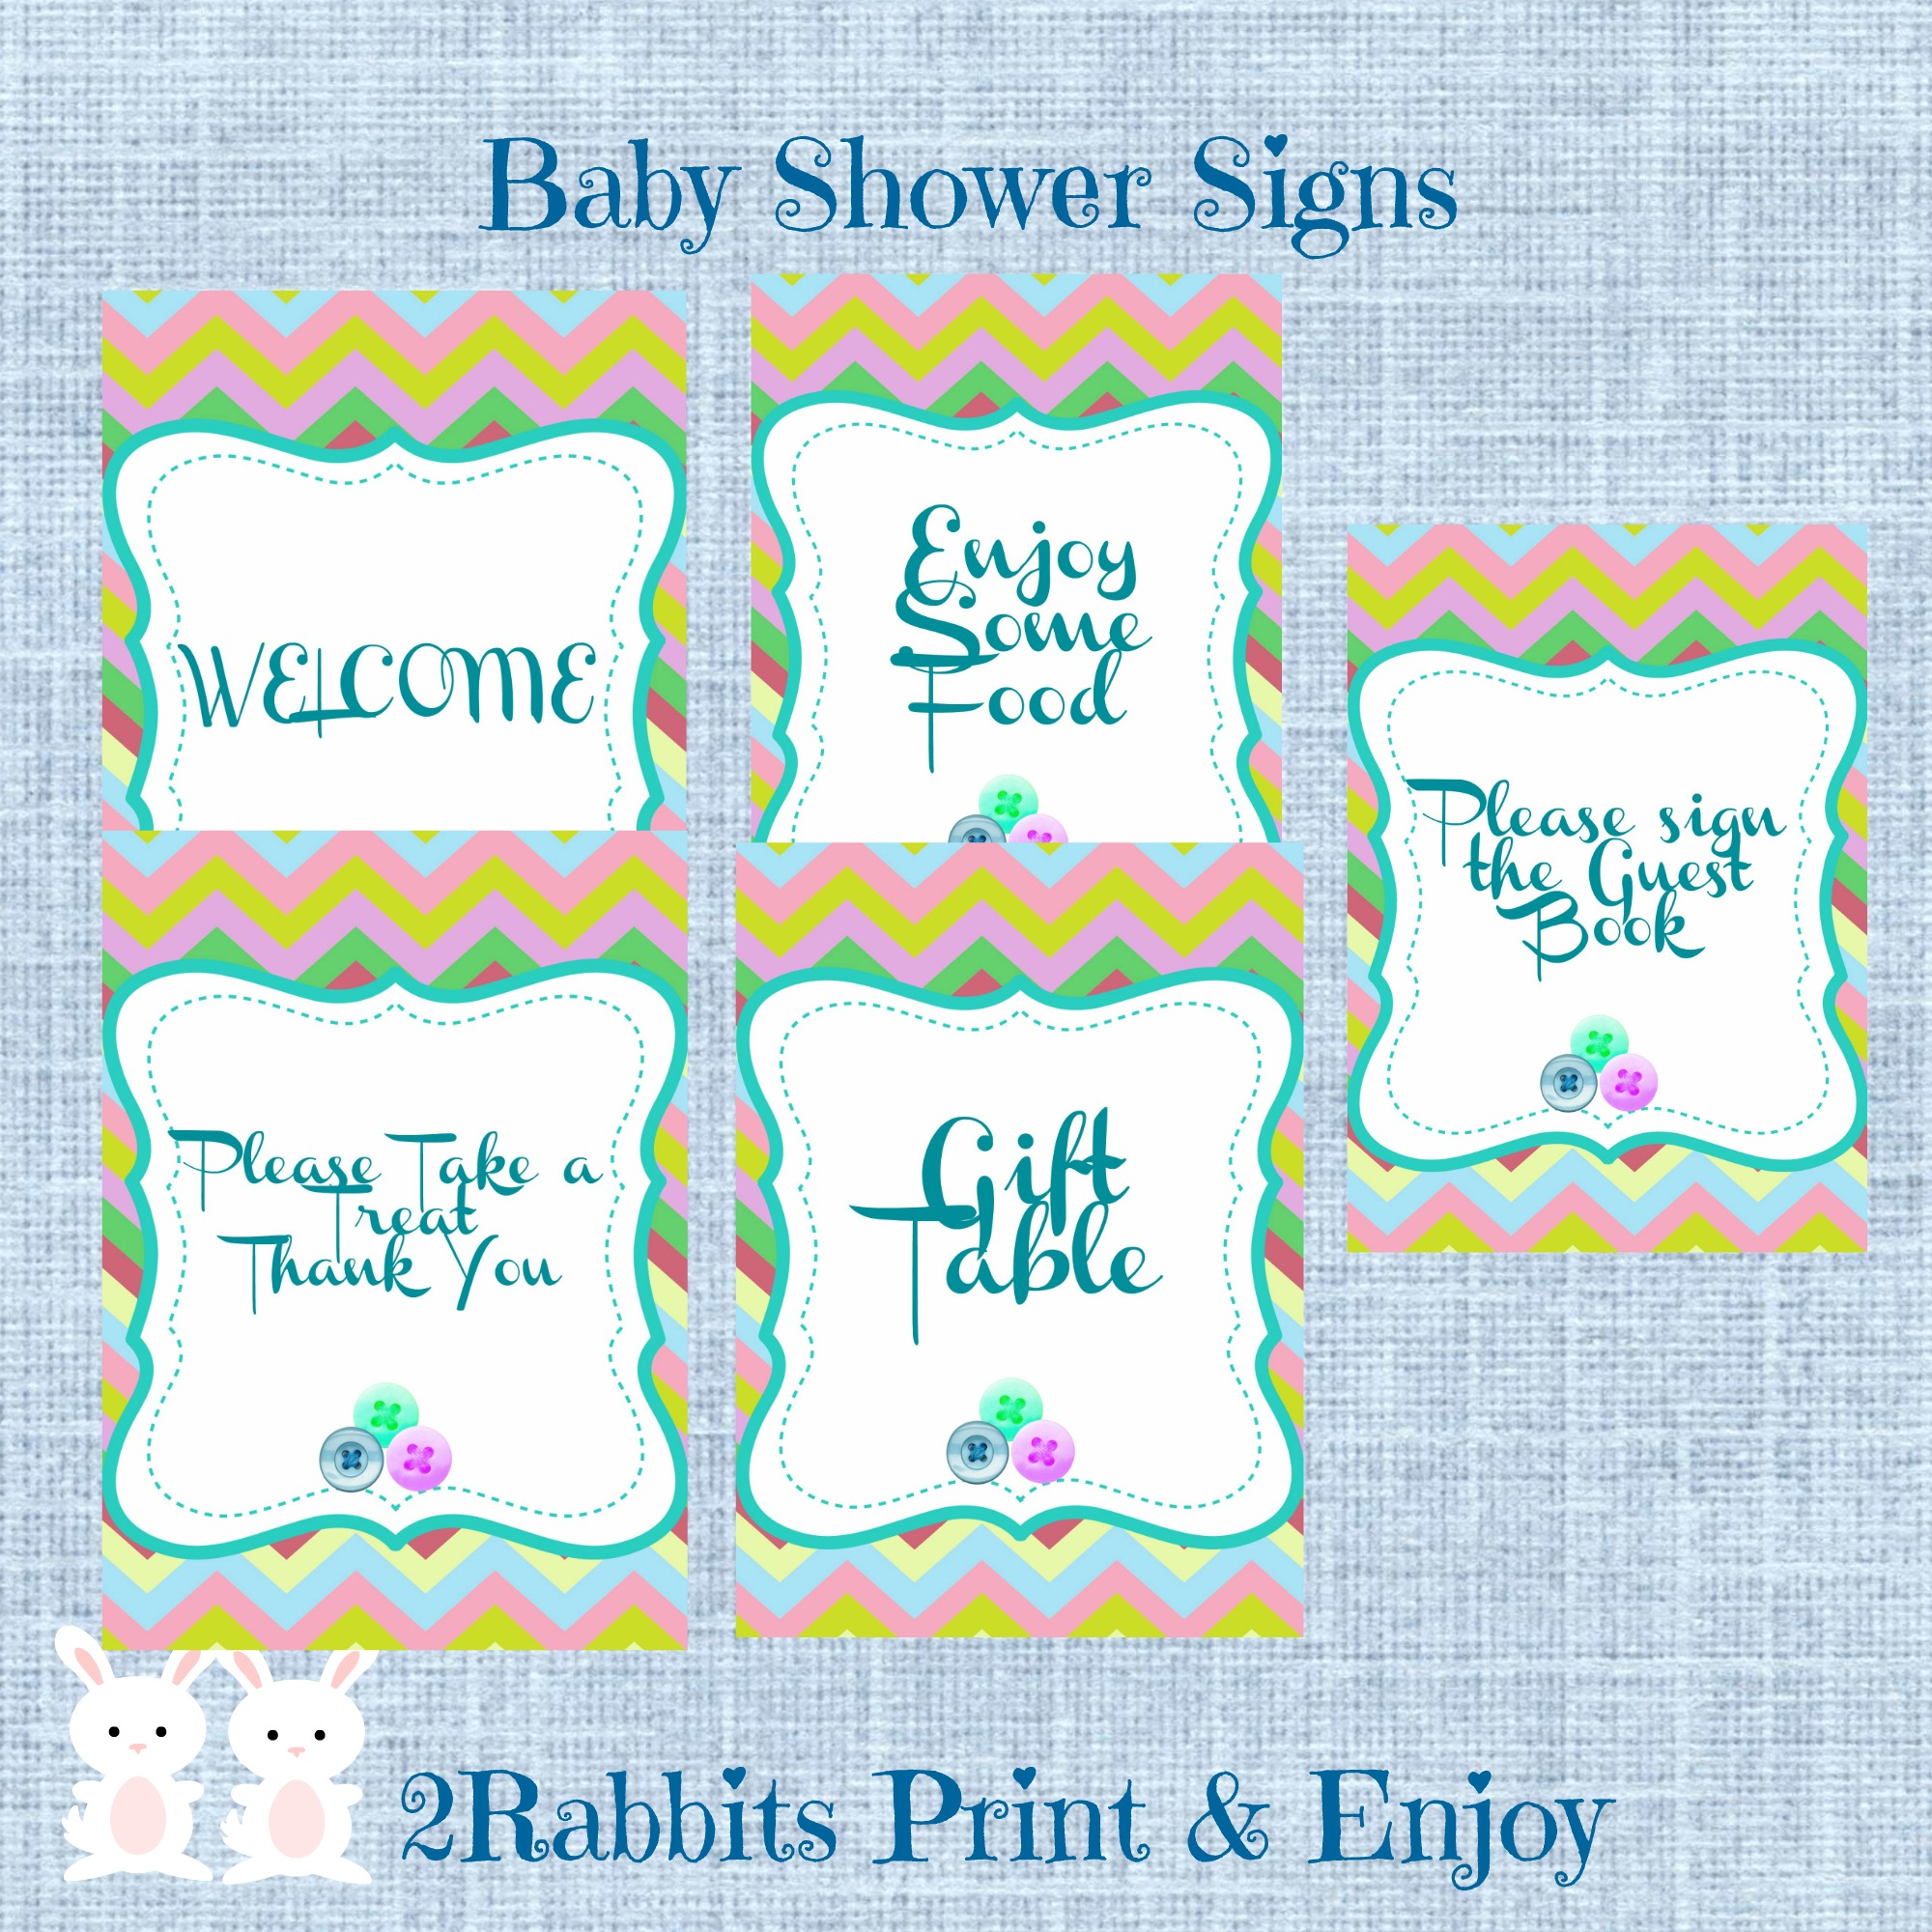 Cute As A Button Baby Shower Printable Signs